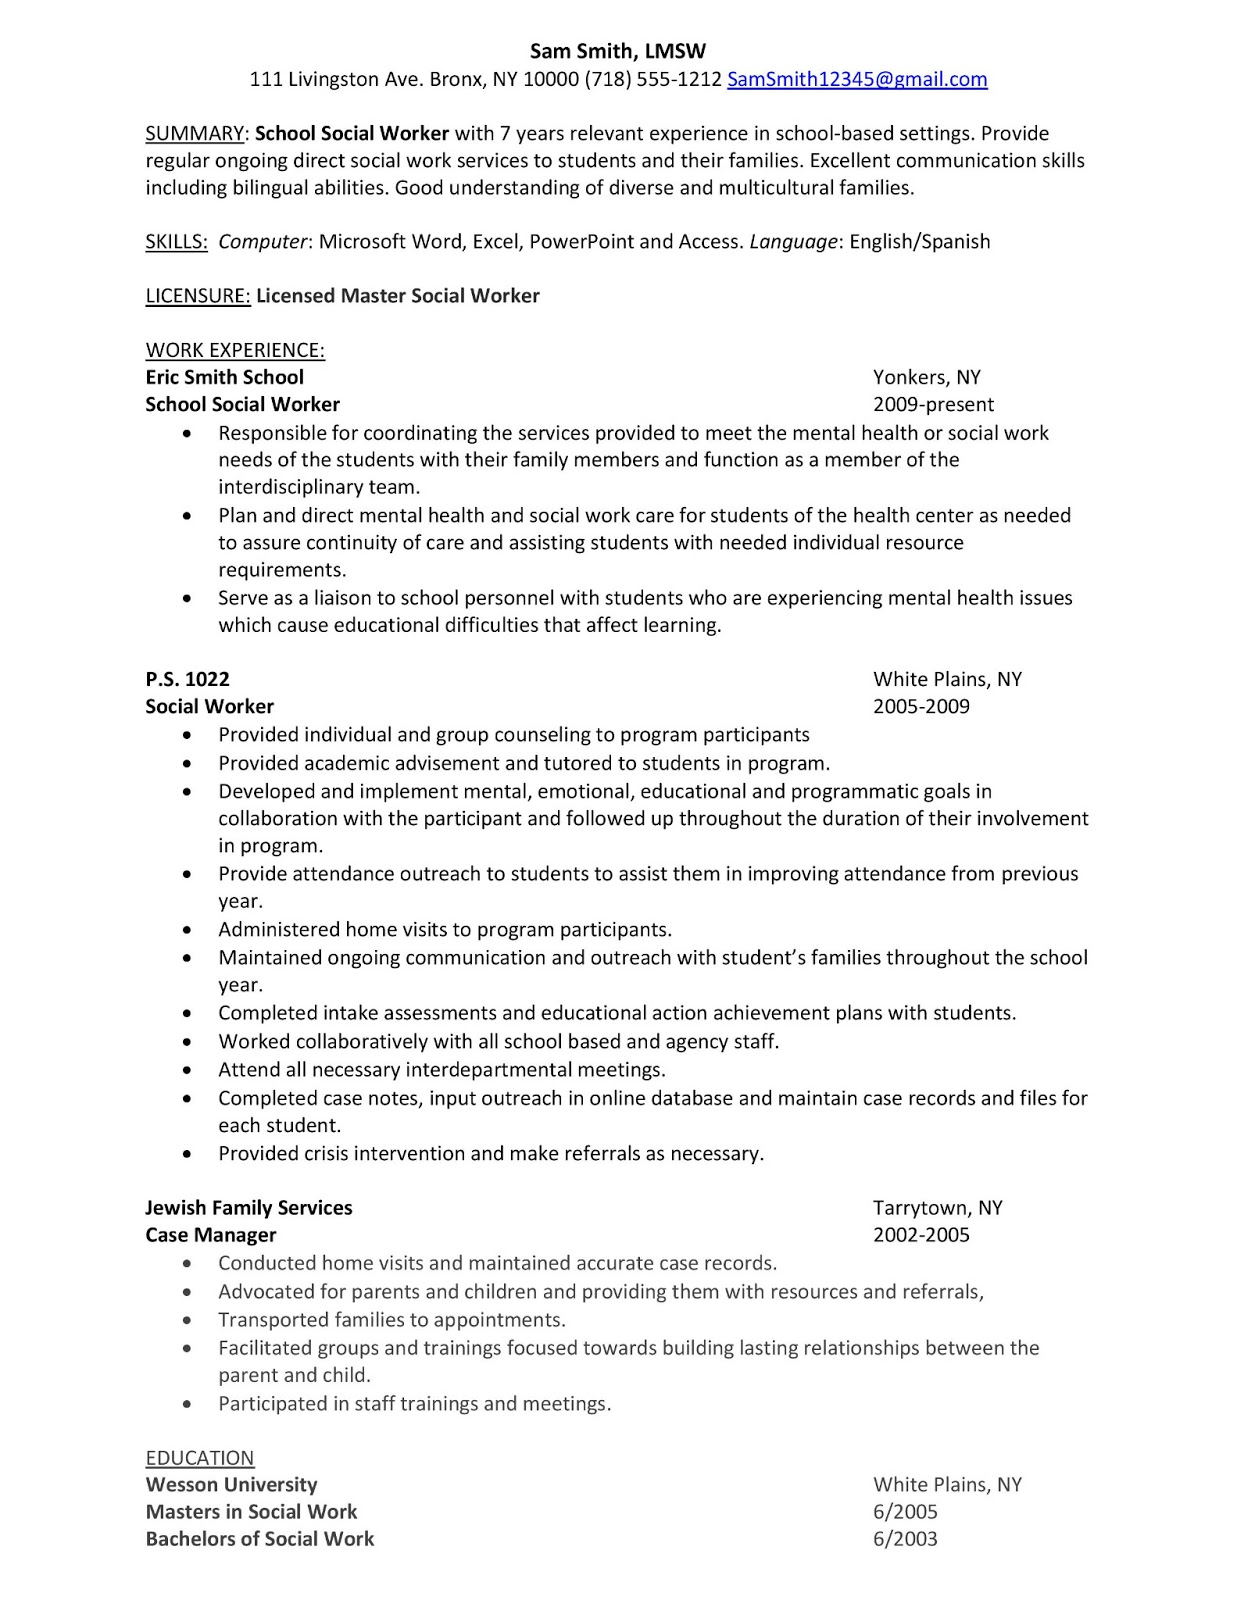 social worker cover letter example outstanding cover letter msw resume sample social work internship cover letter